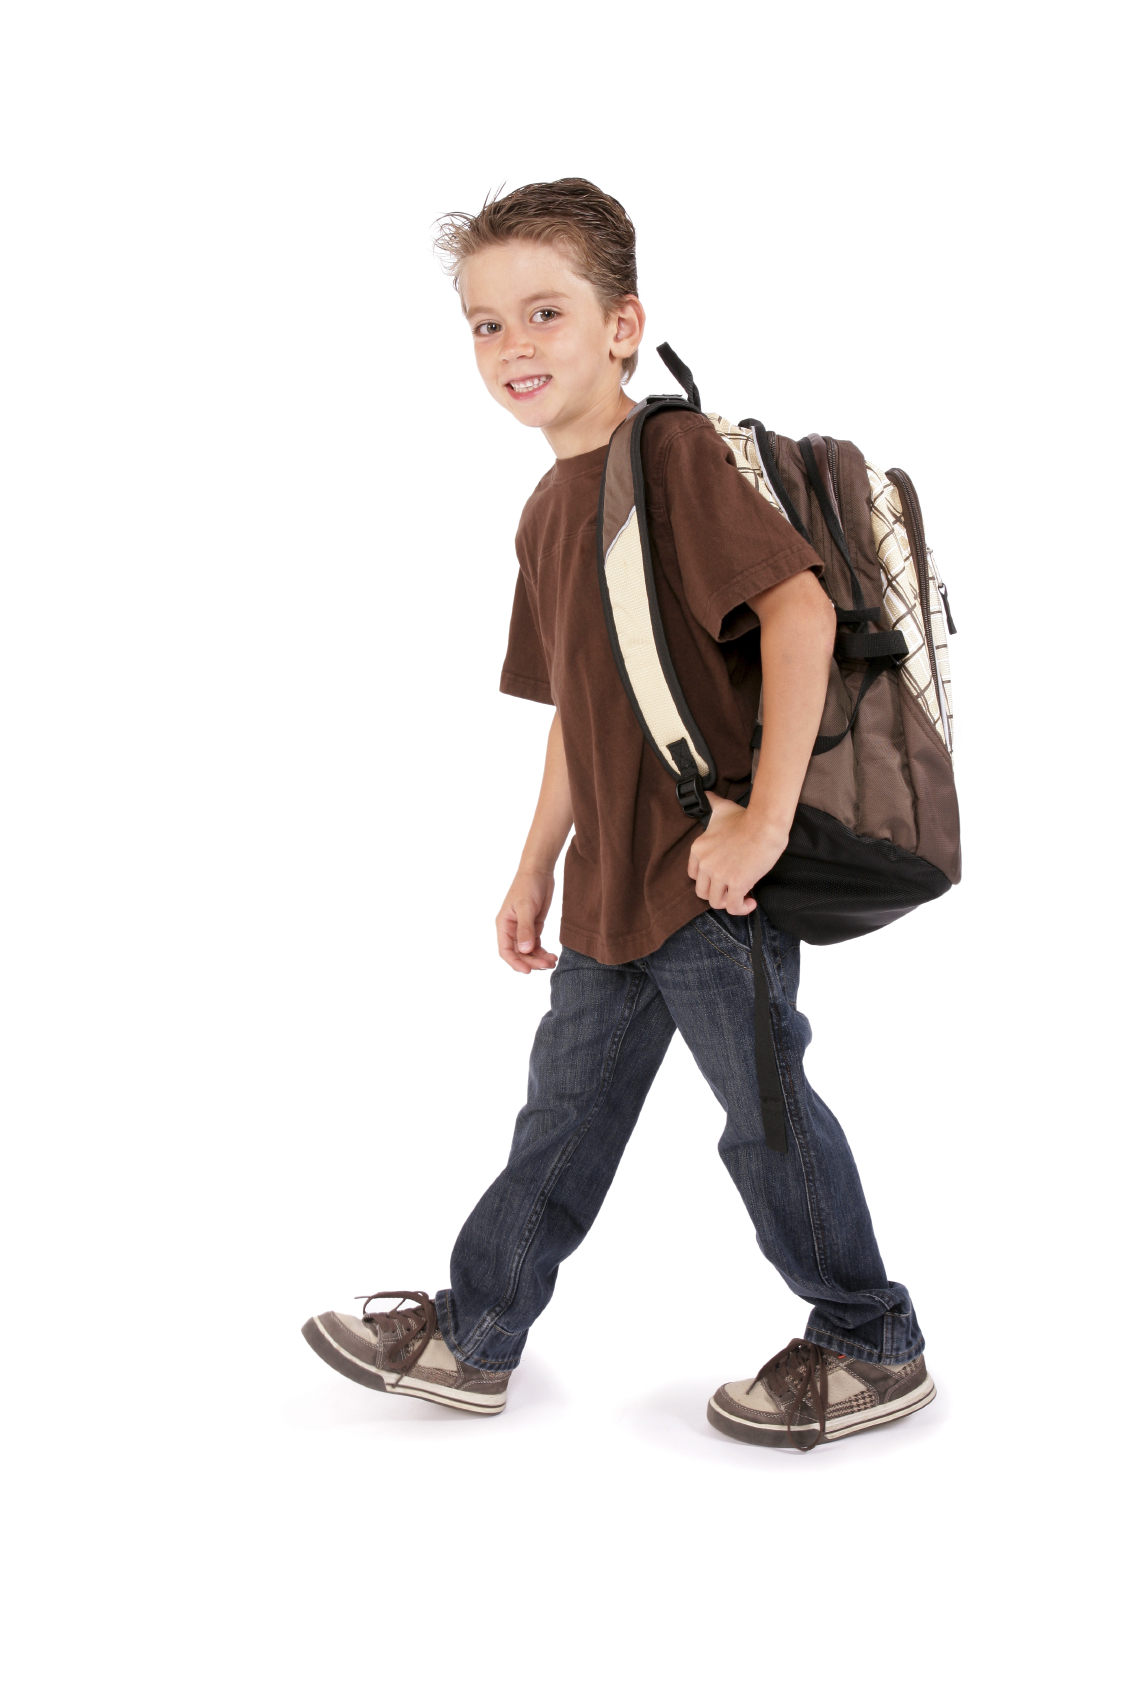 Top 5 Ways To Avoid Backpack Related Back Pain